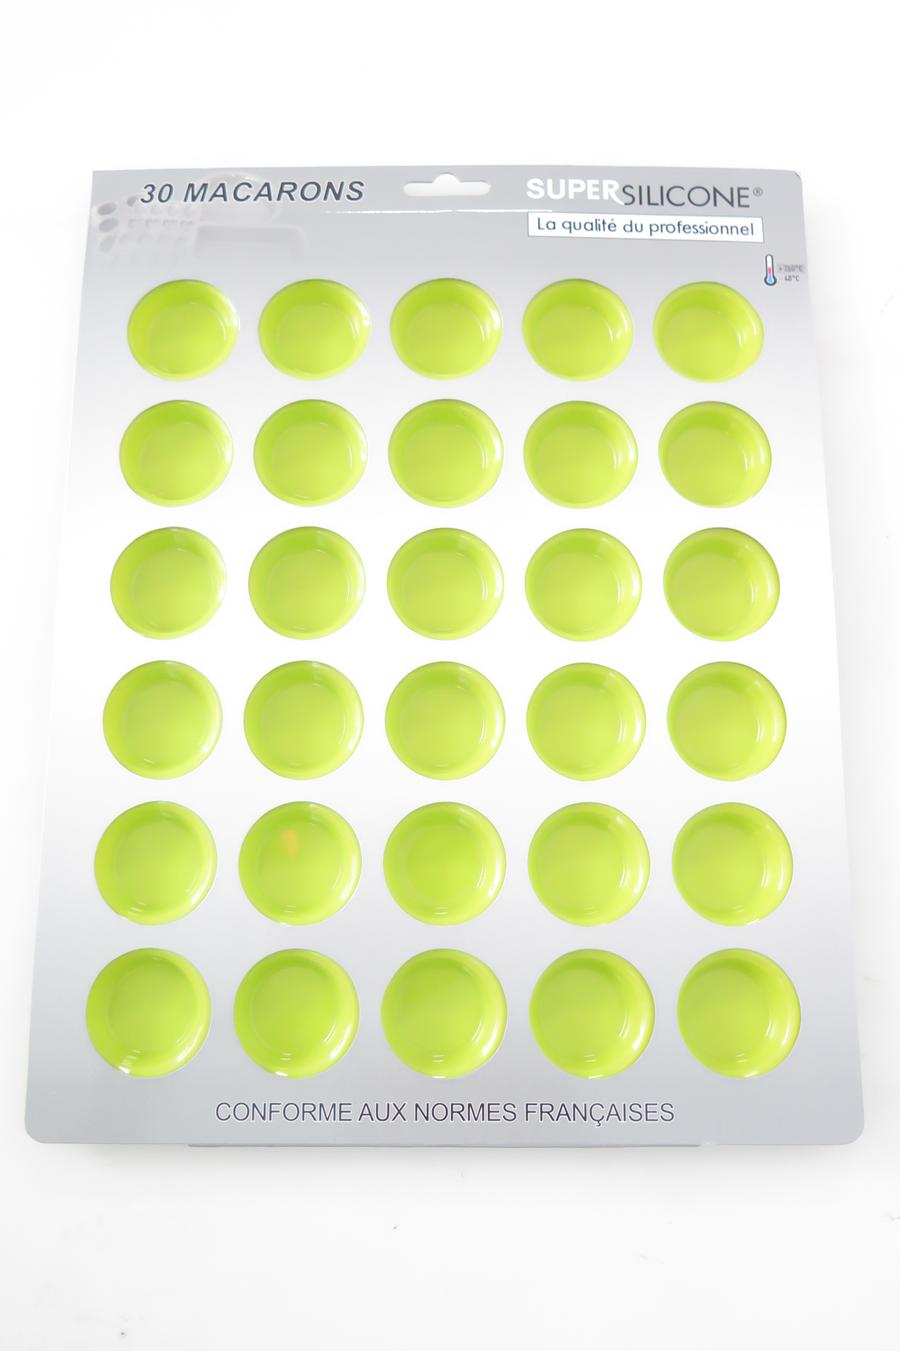 MOULE SILICONE 30 MACARONS